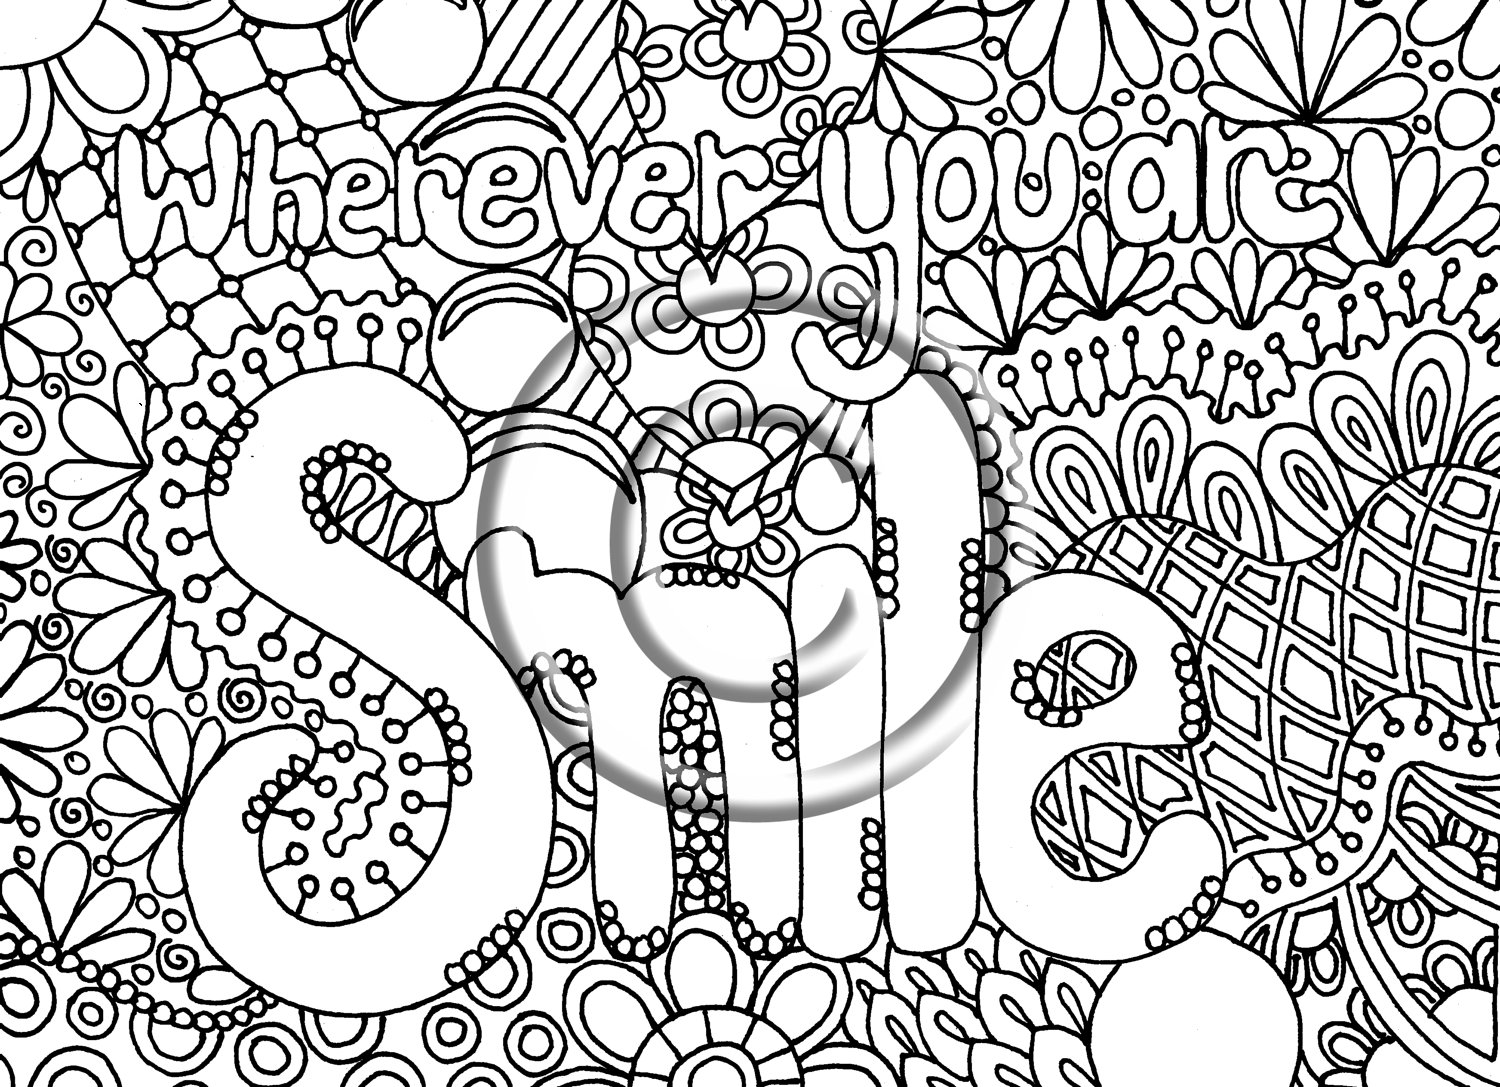 printable coloring pages abstract designs decimamas